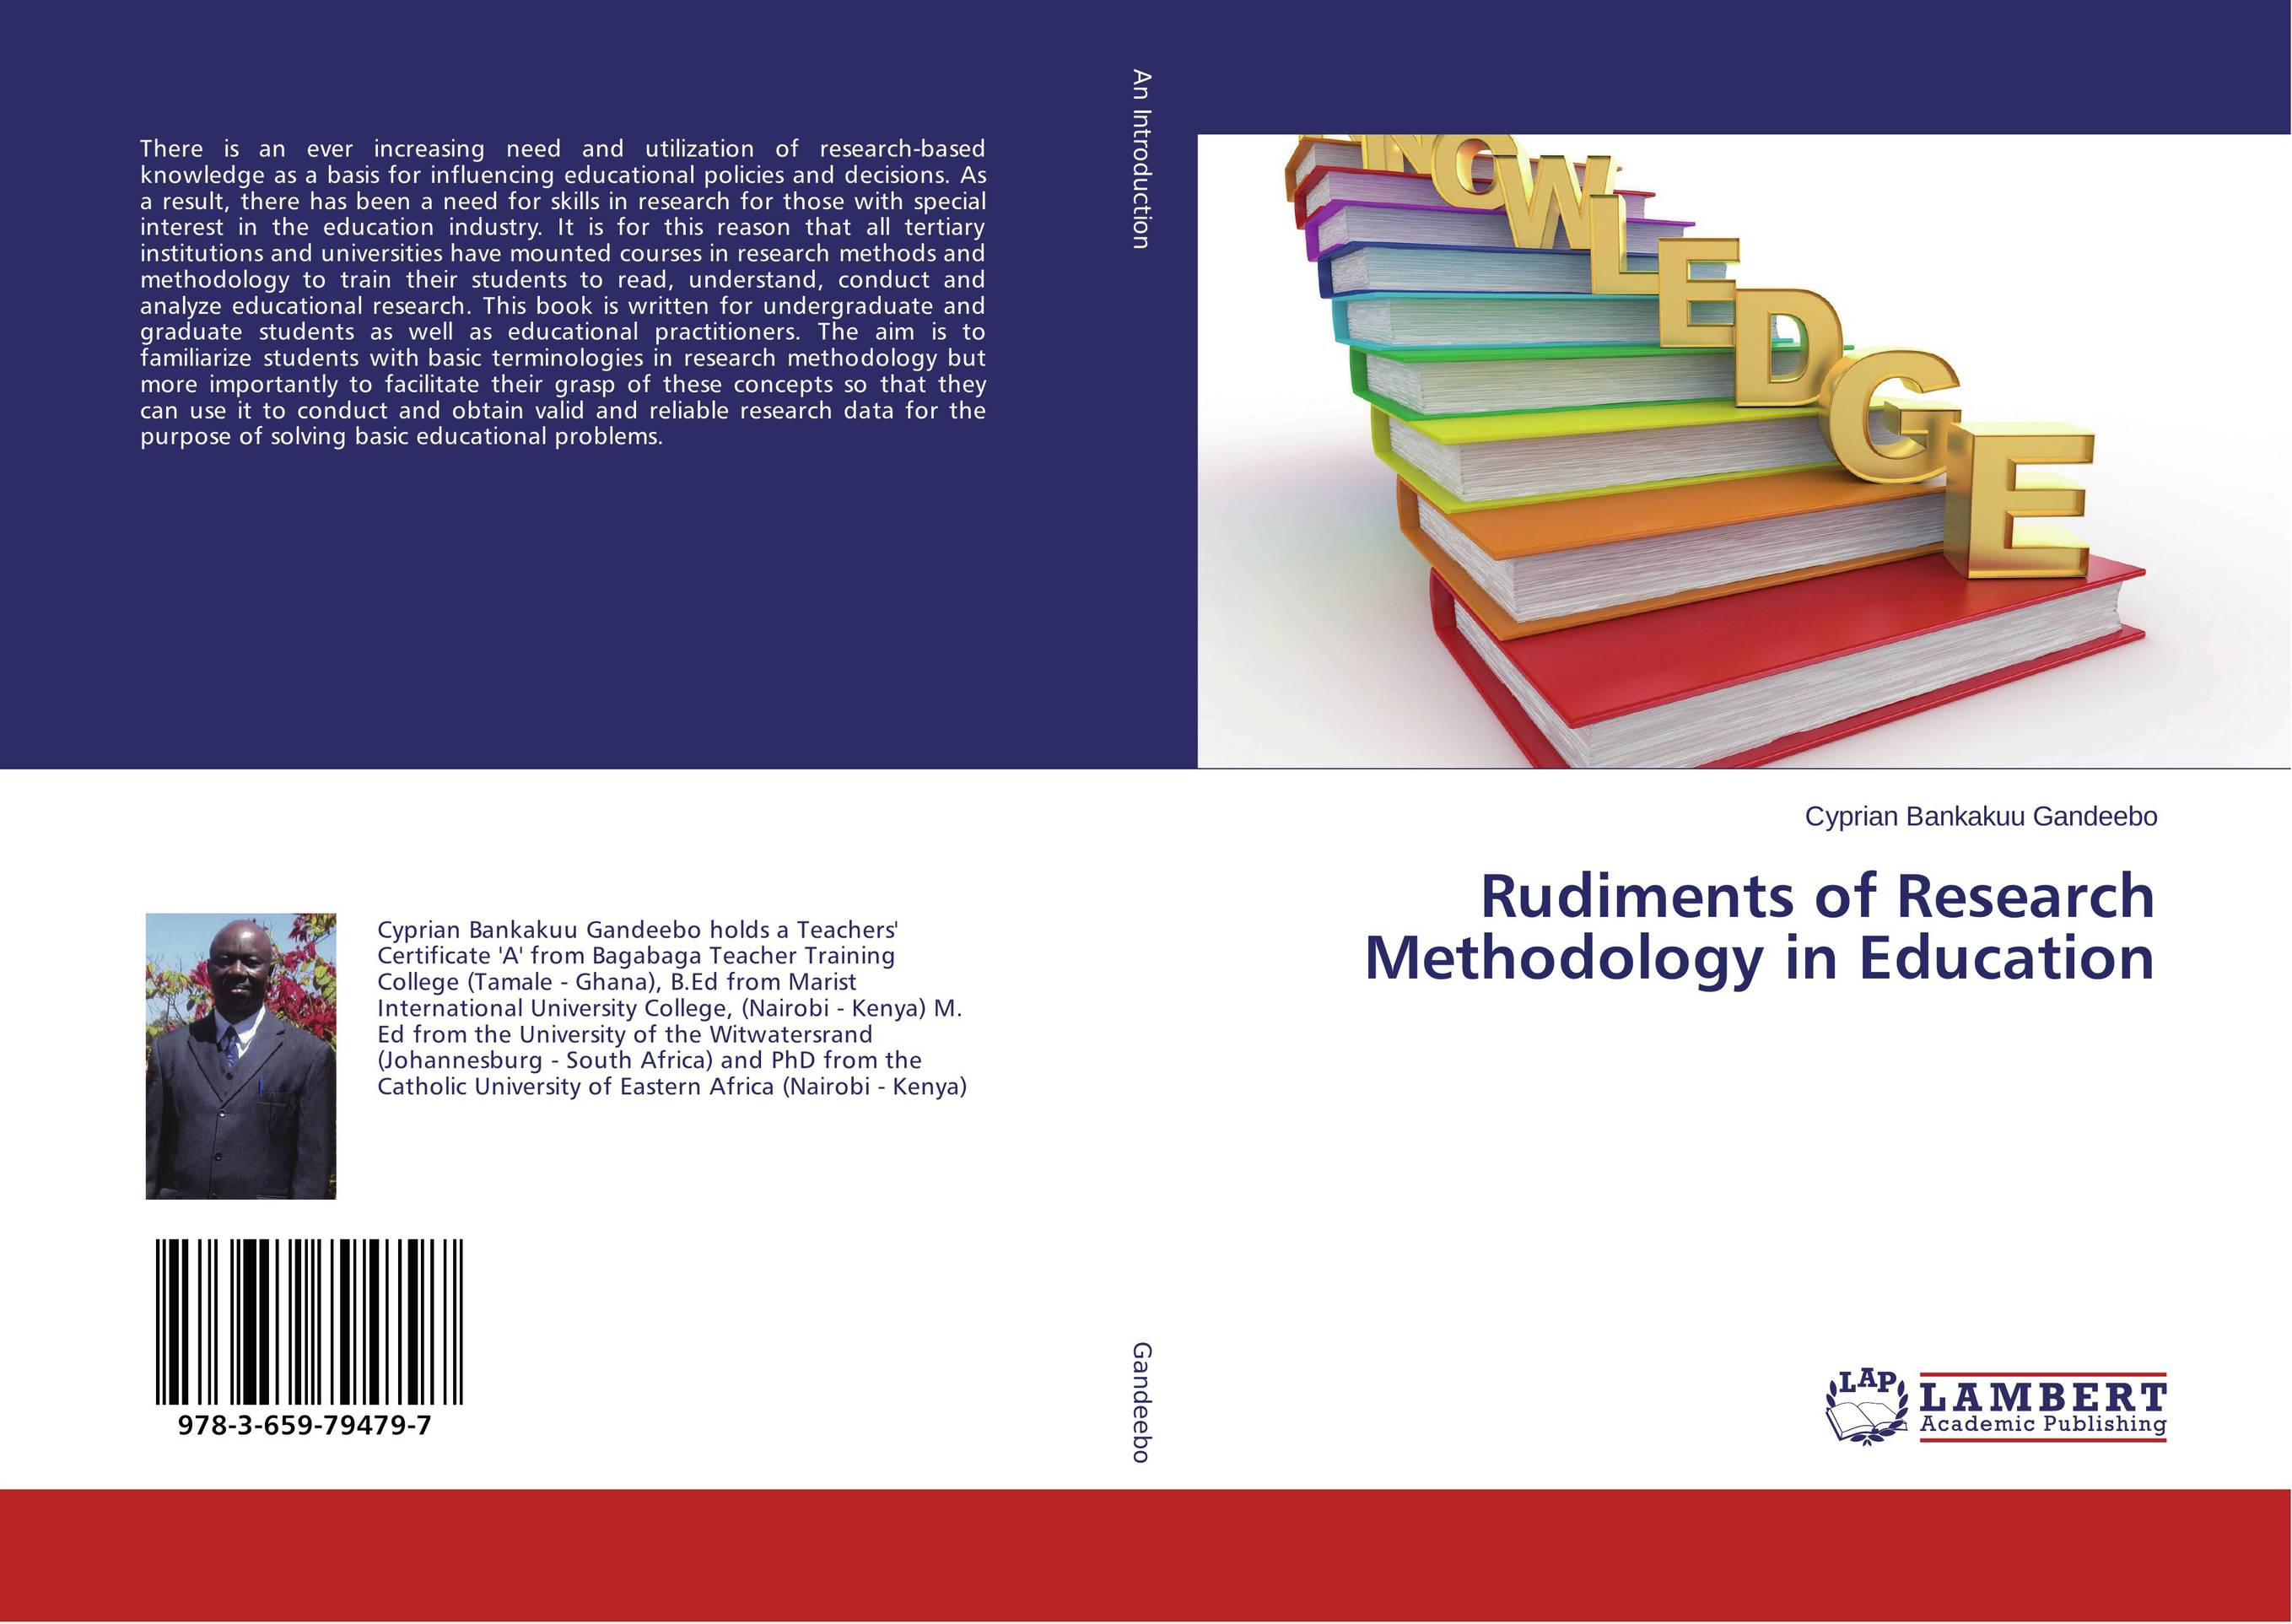 Rudiments of Research Methodology in Education economic methodology